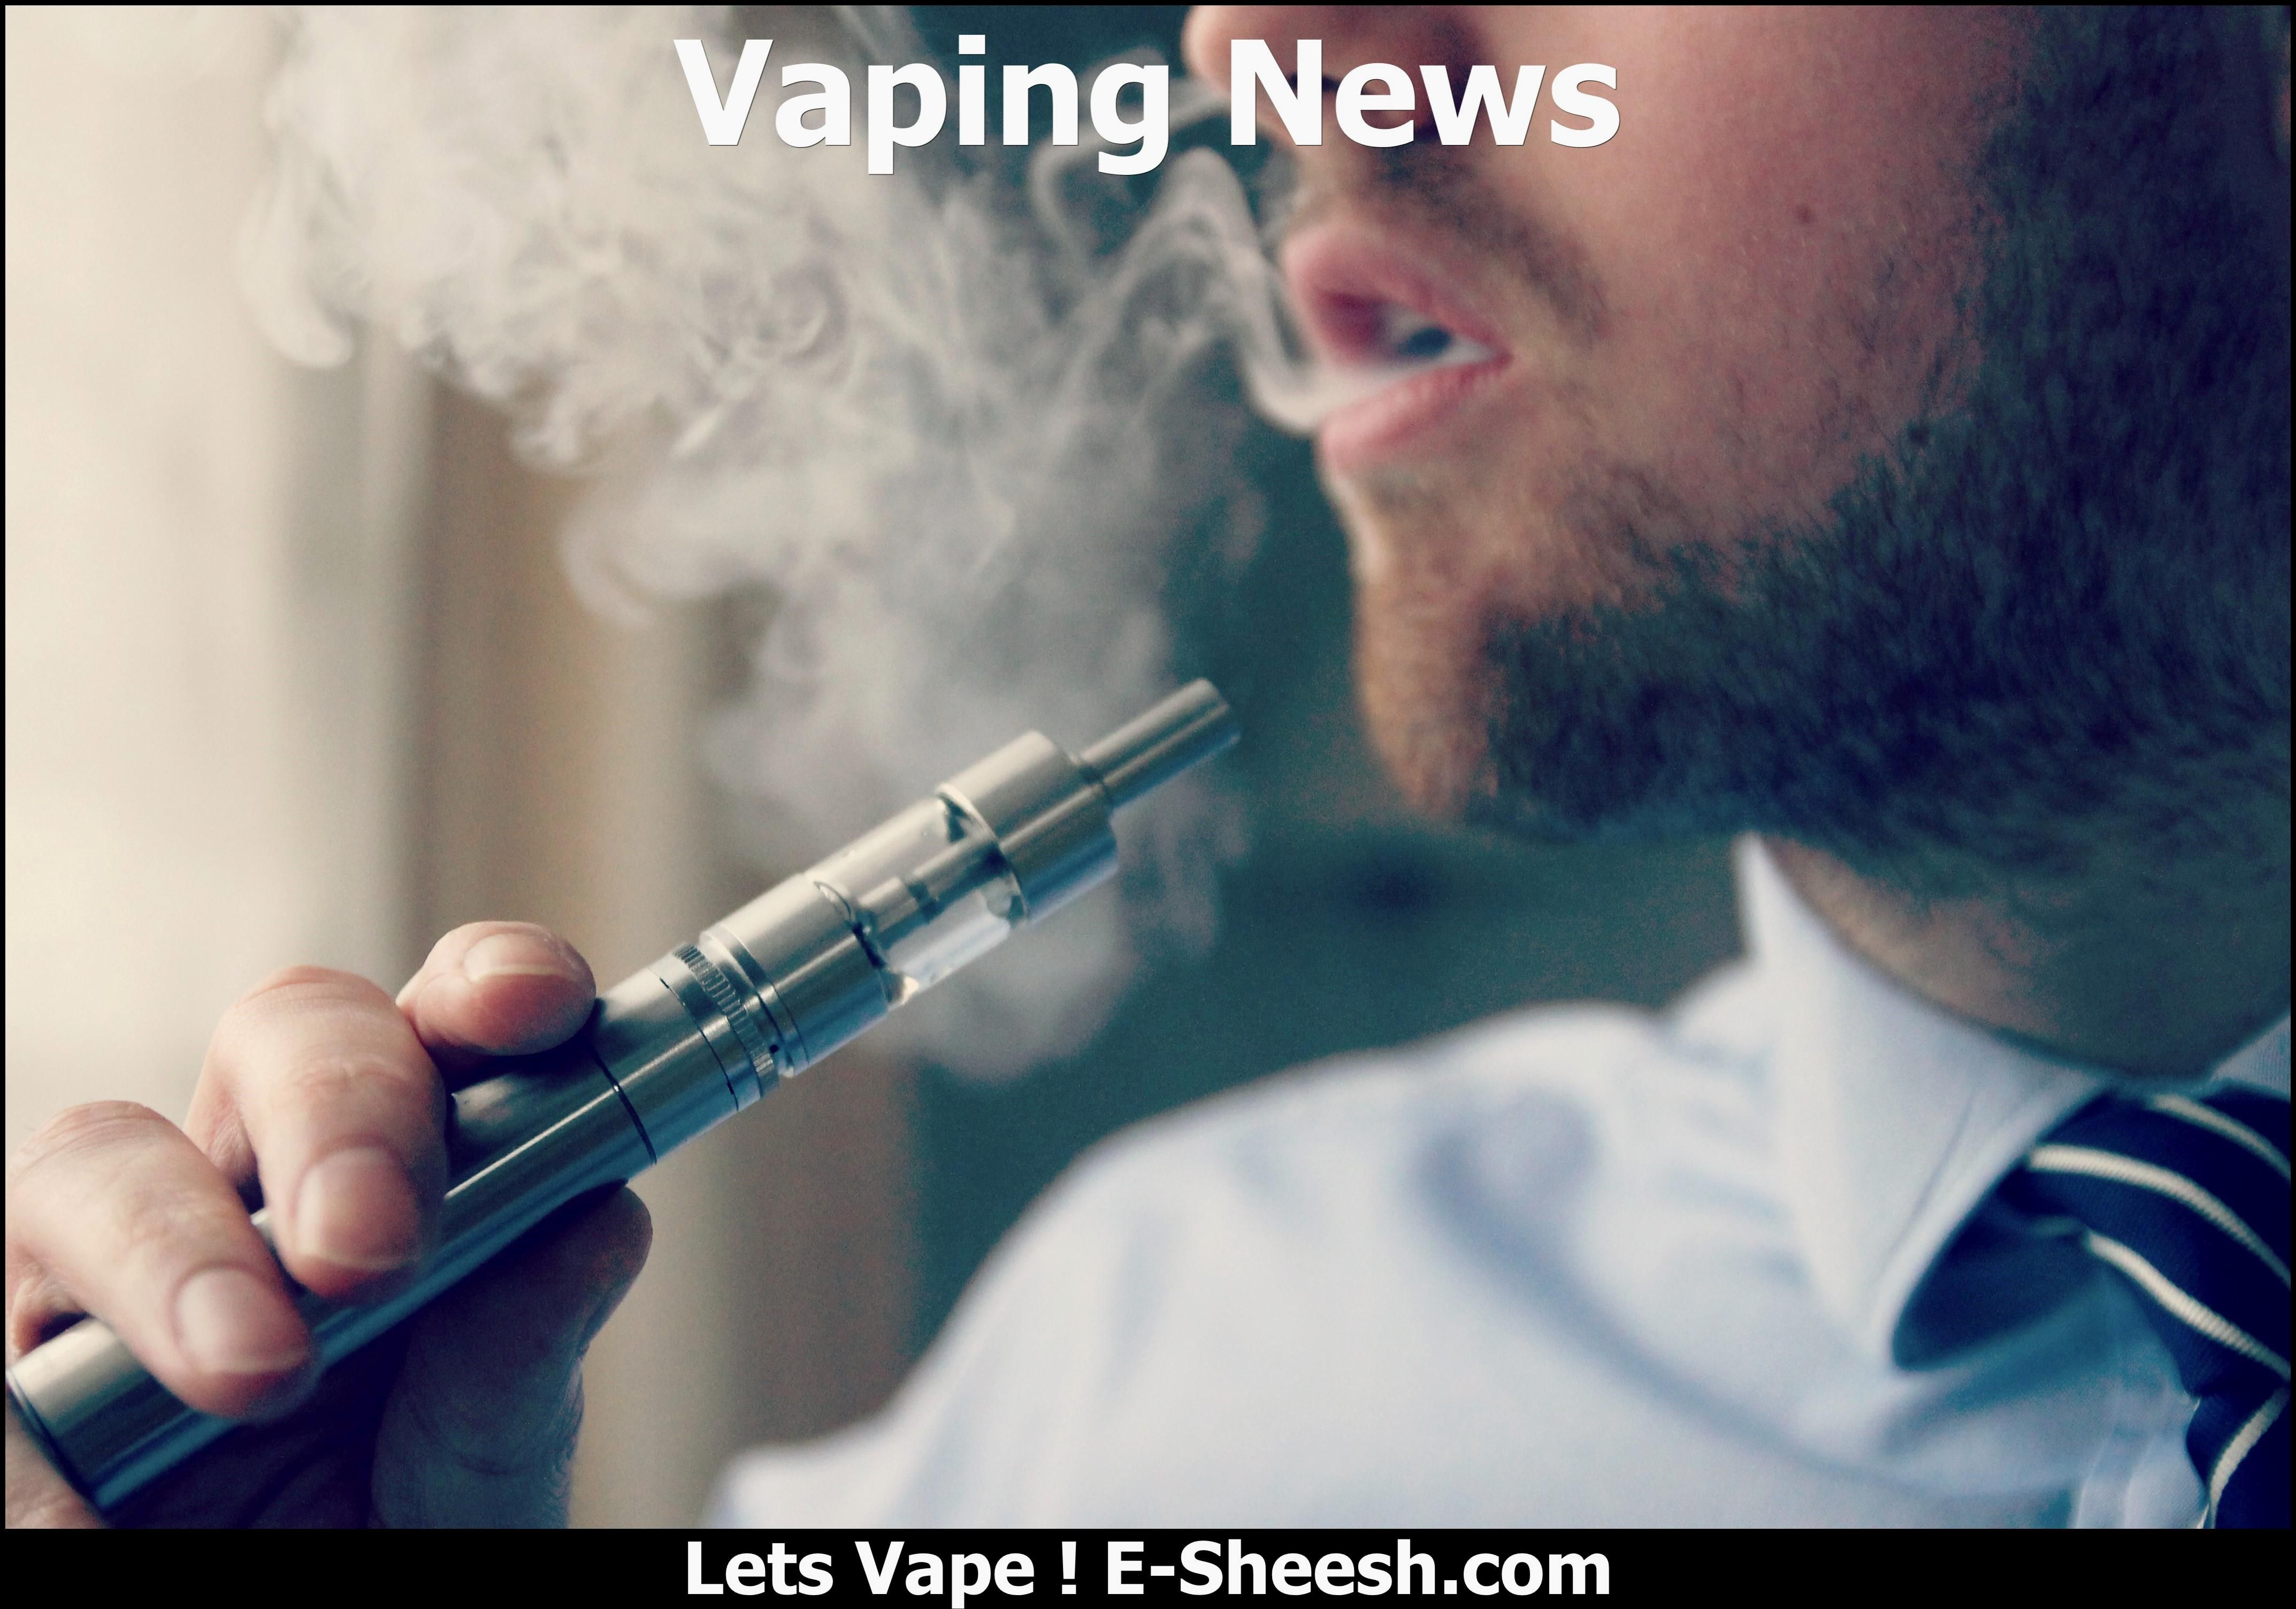 Buffalo Grove weighs stricter regulations on vaping #vape http://relatednews.info/es-buffalo-grove-weighs-stri